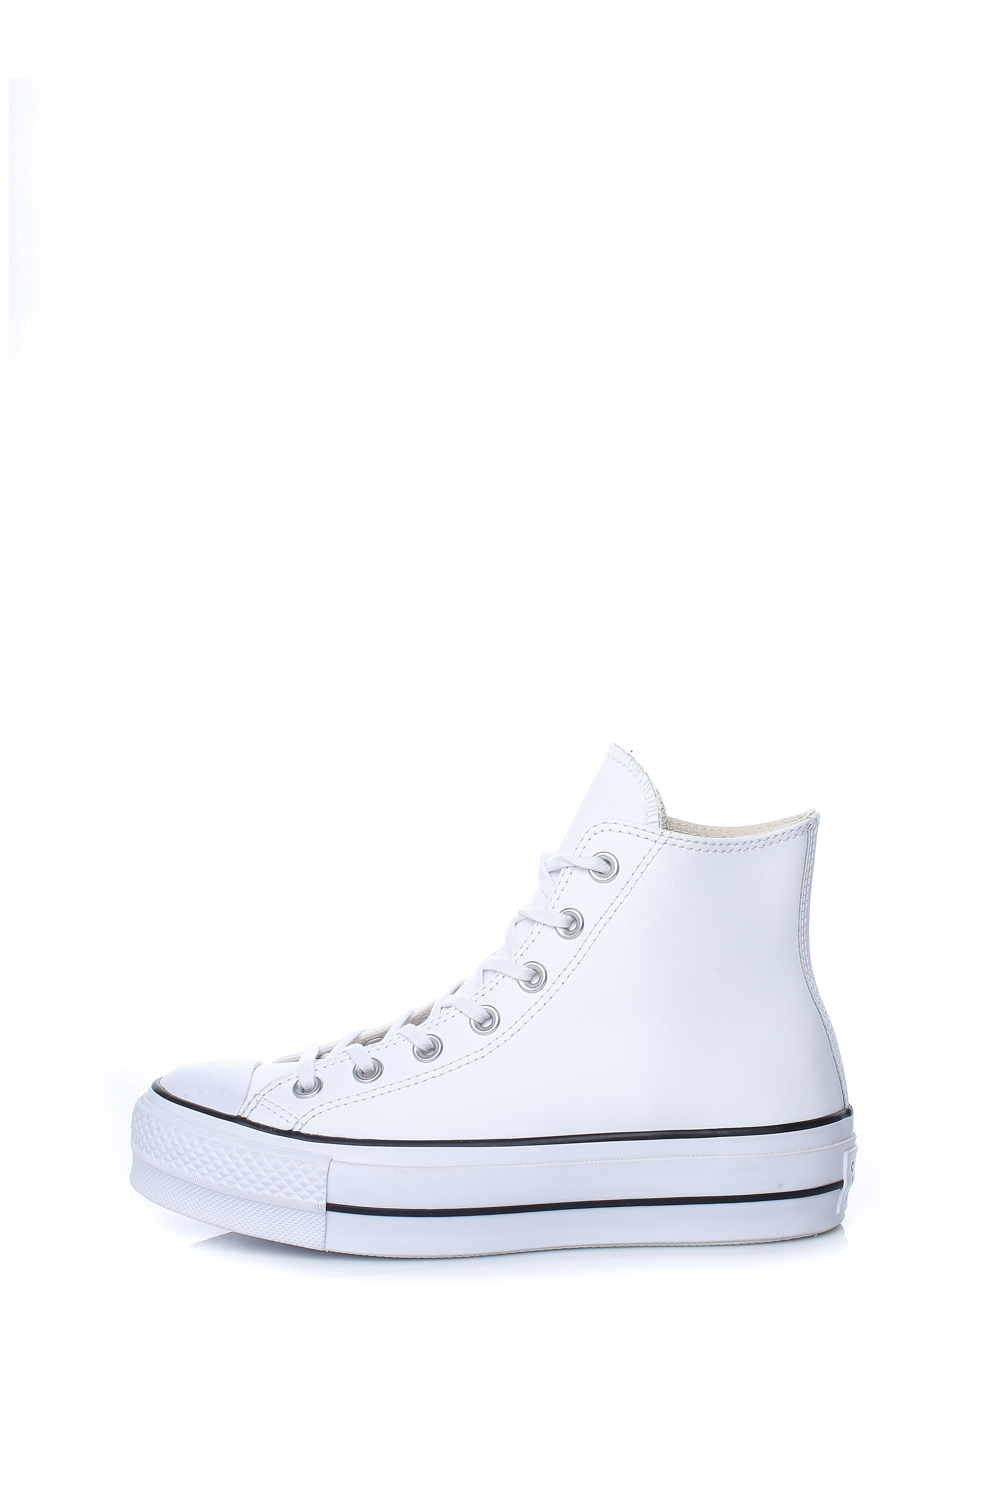 CONVERSE – Γυναικεία δερμάτινα sneakers CONVERSE CHUCK TAYLOR ALL STAR LIFT λευκά